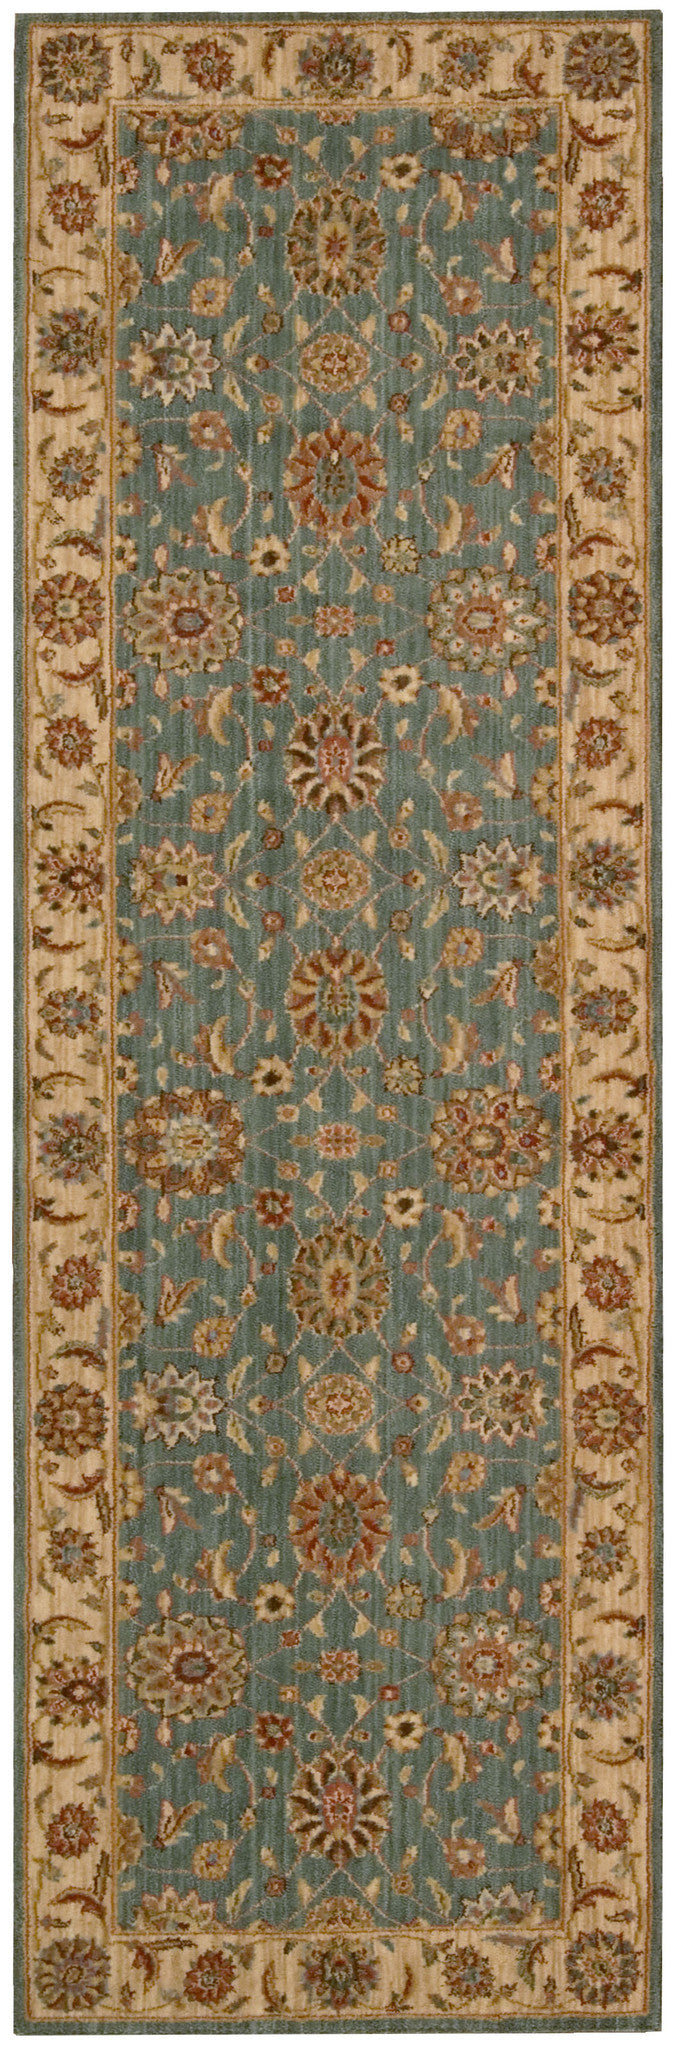 Nourison Living Treasures Aqua Area Rug LI05 AQU